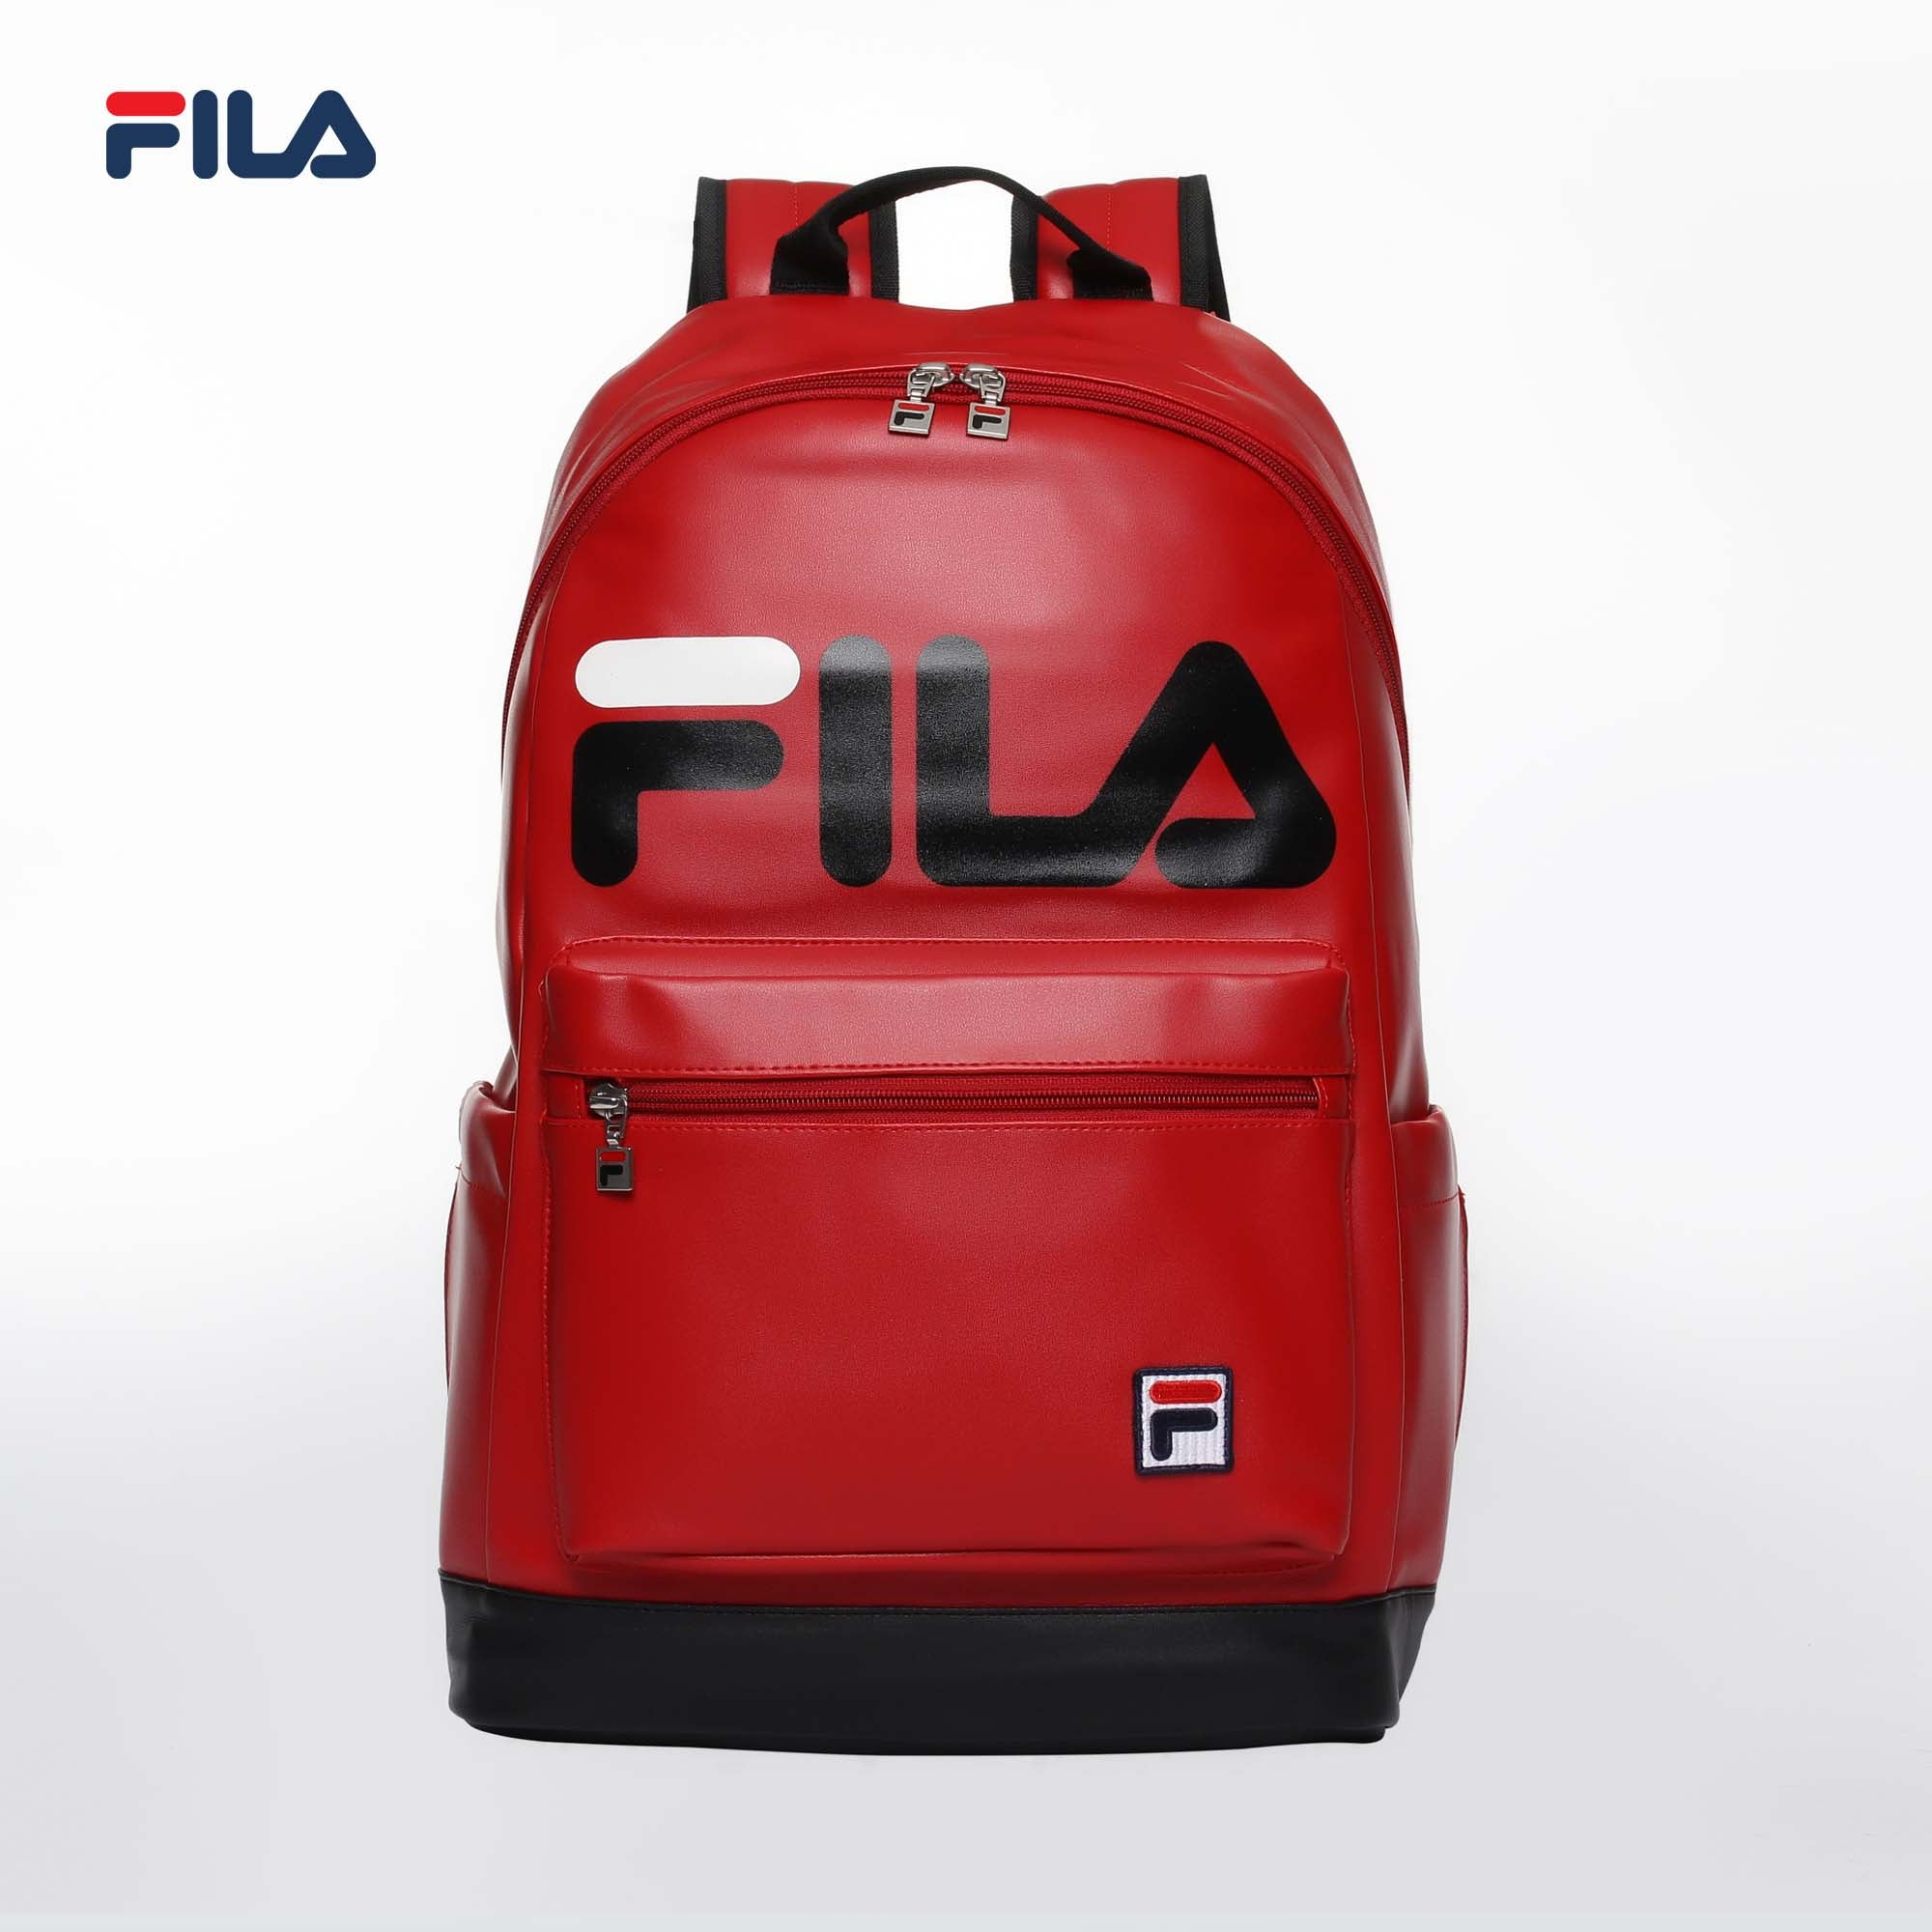 ERZA BACKPACK FREE SIZE - RED